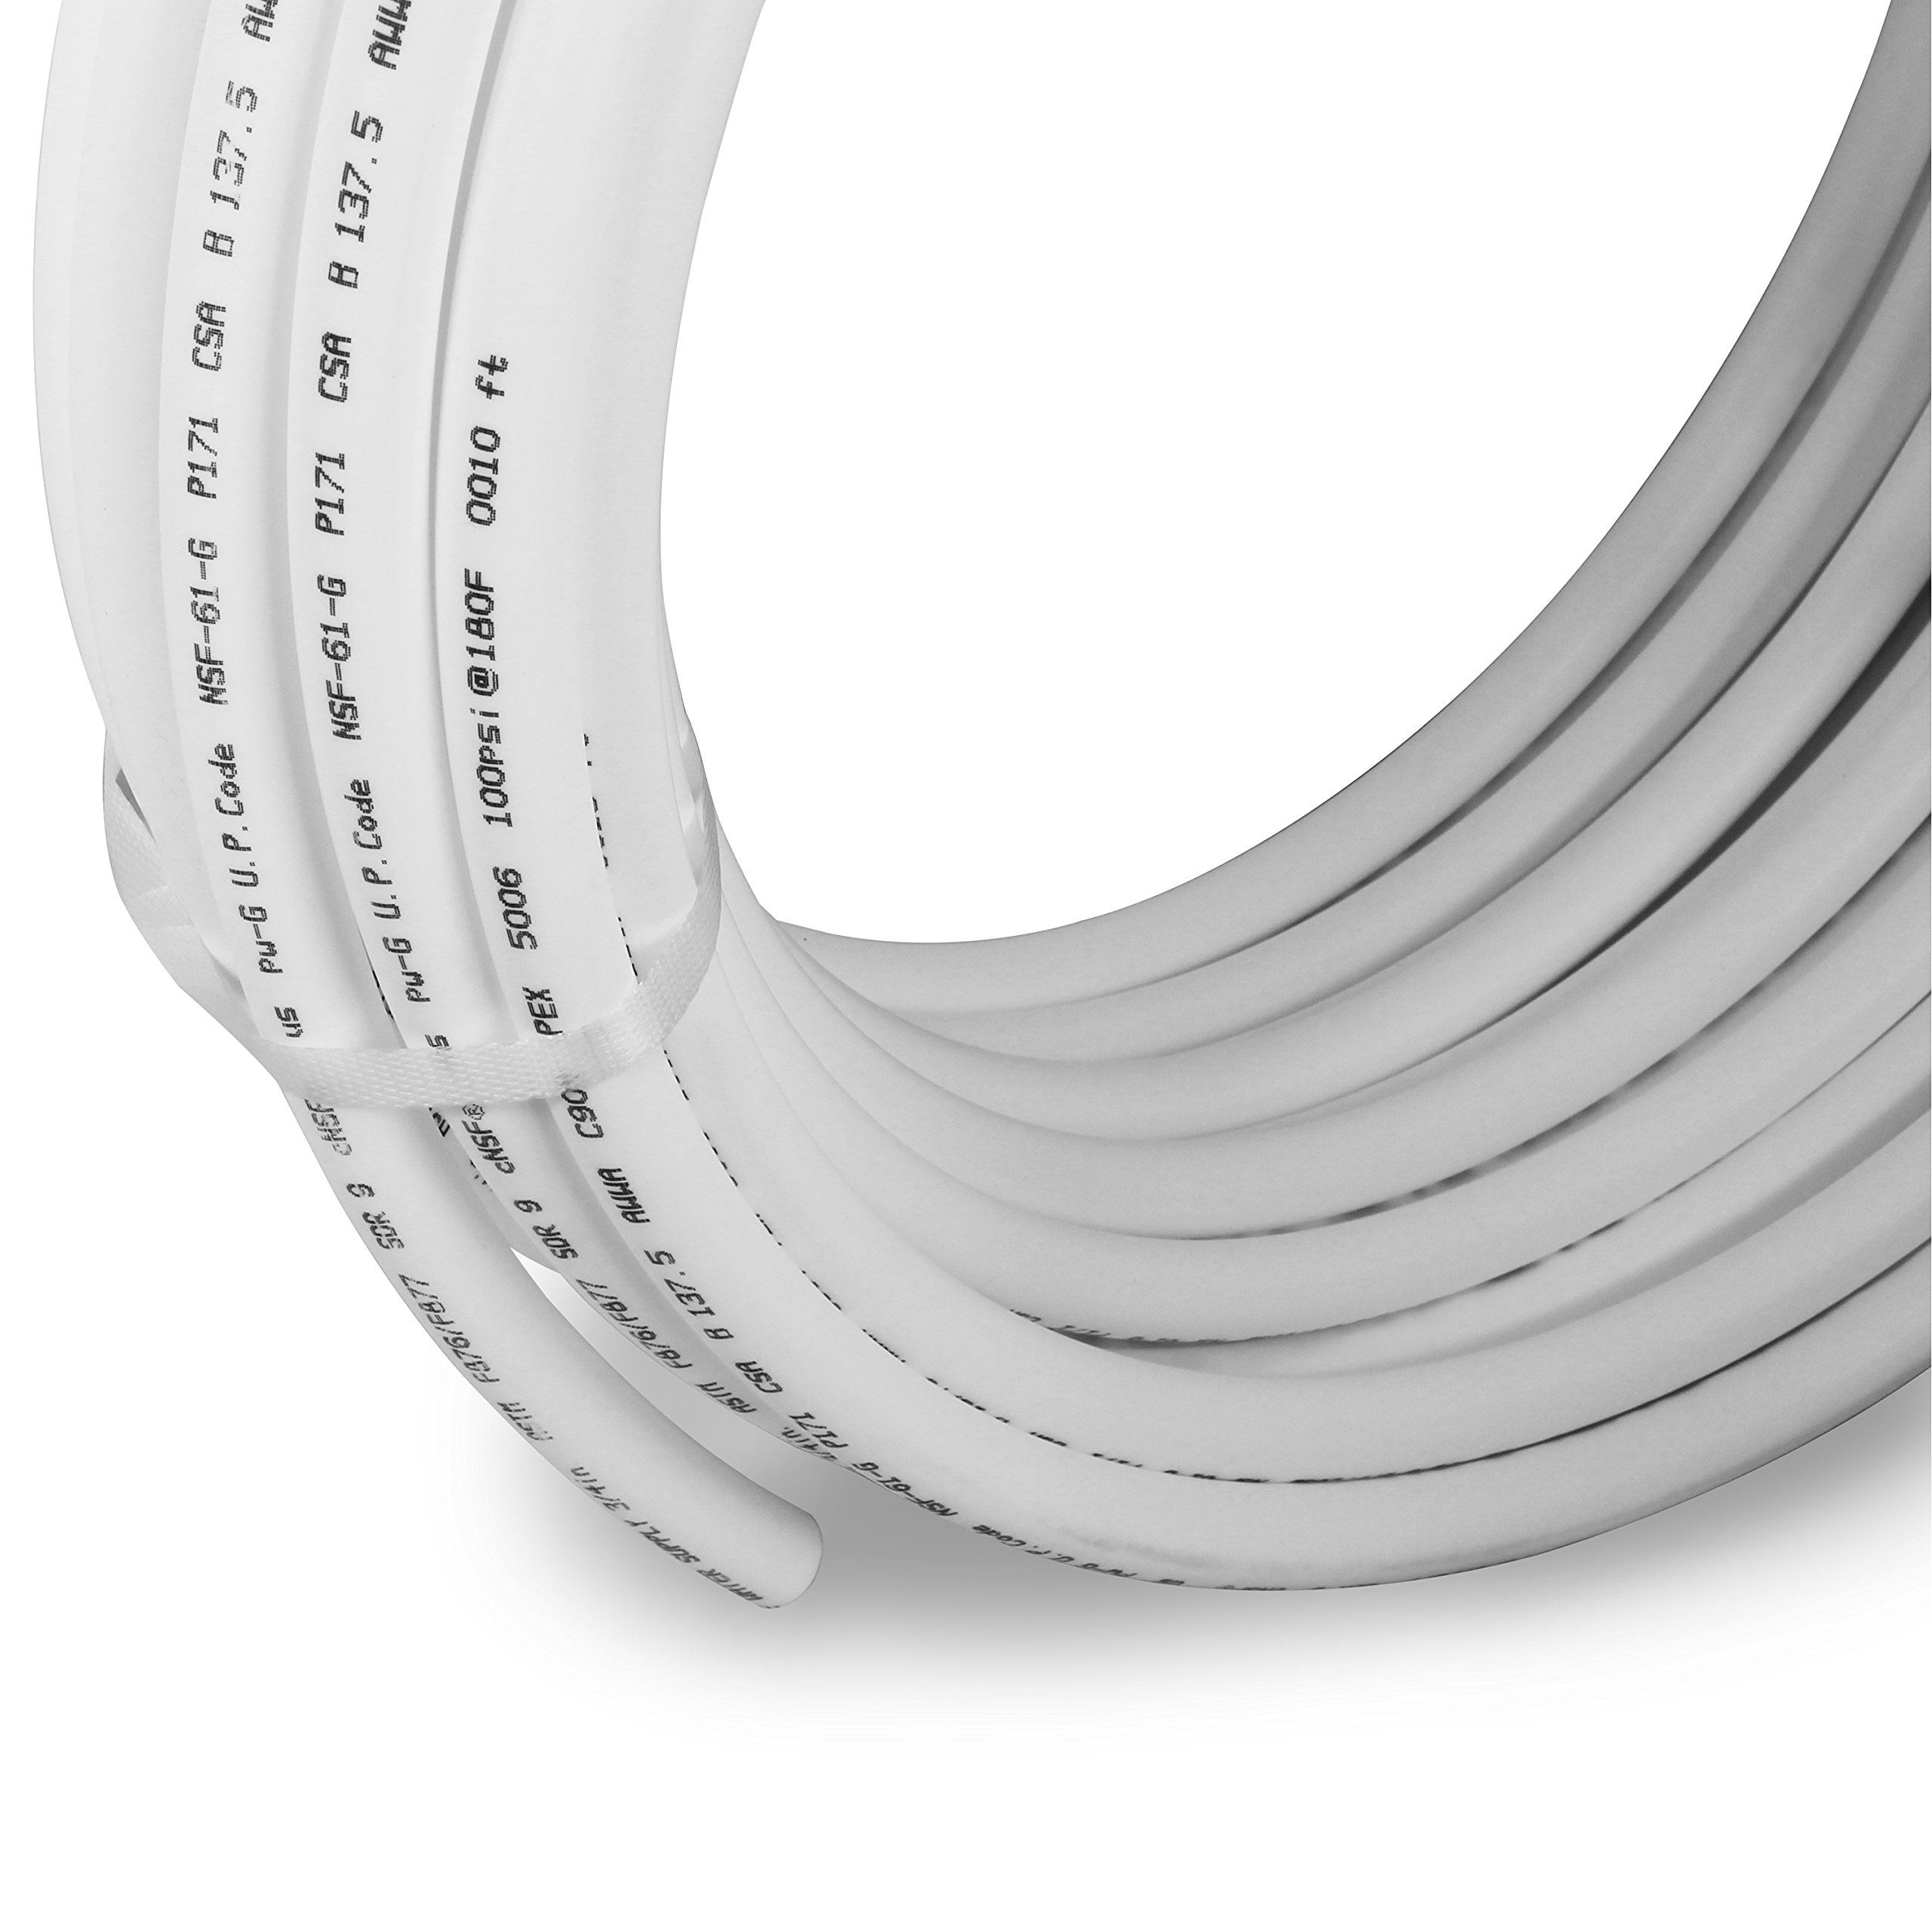 Pexflow PEX Potable Water Tubing - PFW-W1300 1 Inch X 300 Feet Tube Coil for Non-Barrier PEX-B Residential & Commercial Hot & Cold Water Plumbing Application (White) by PEXFLOW (Image #4)